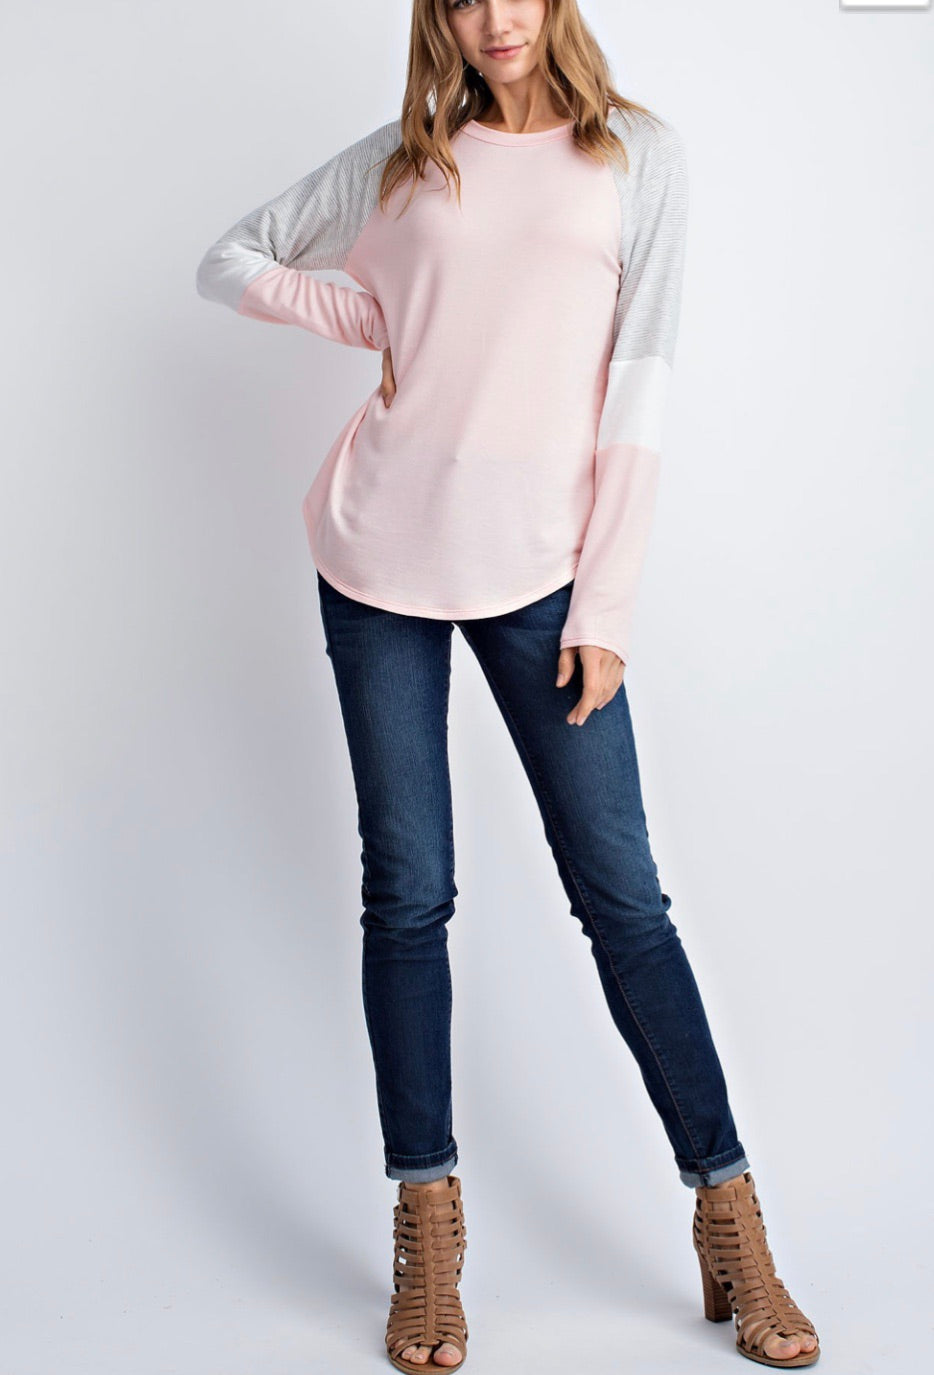 Peach and Gray Long Sleeve Color Block Top